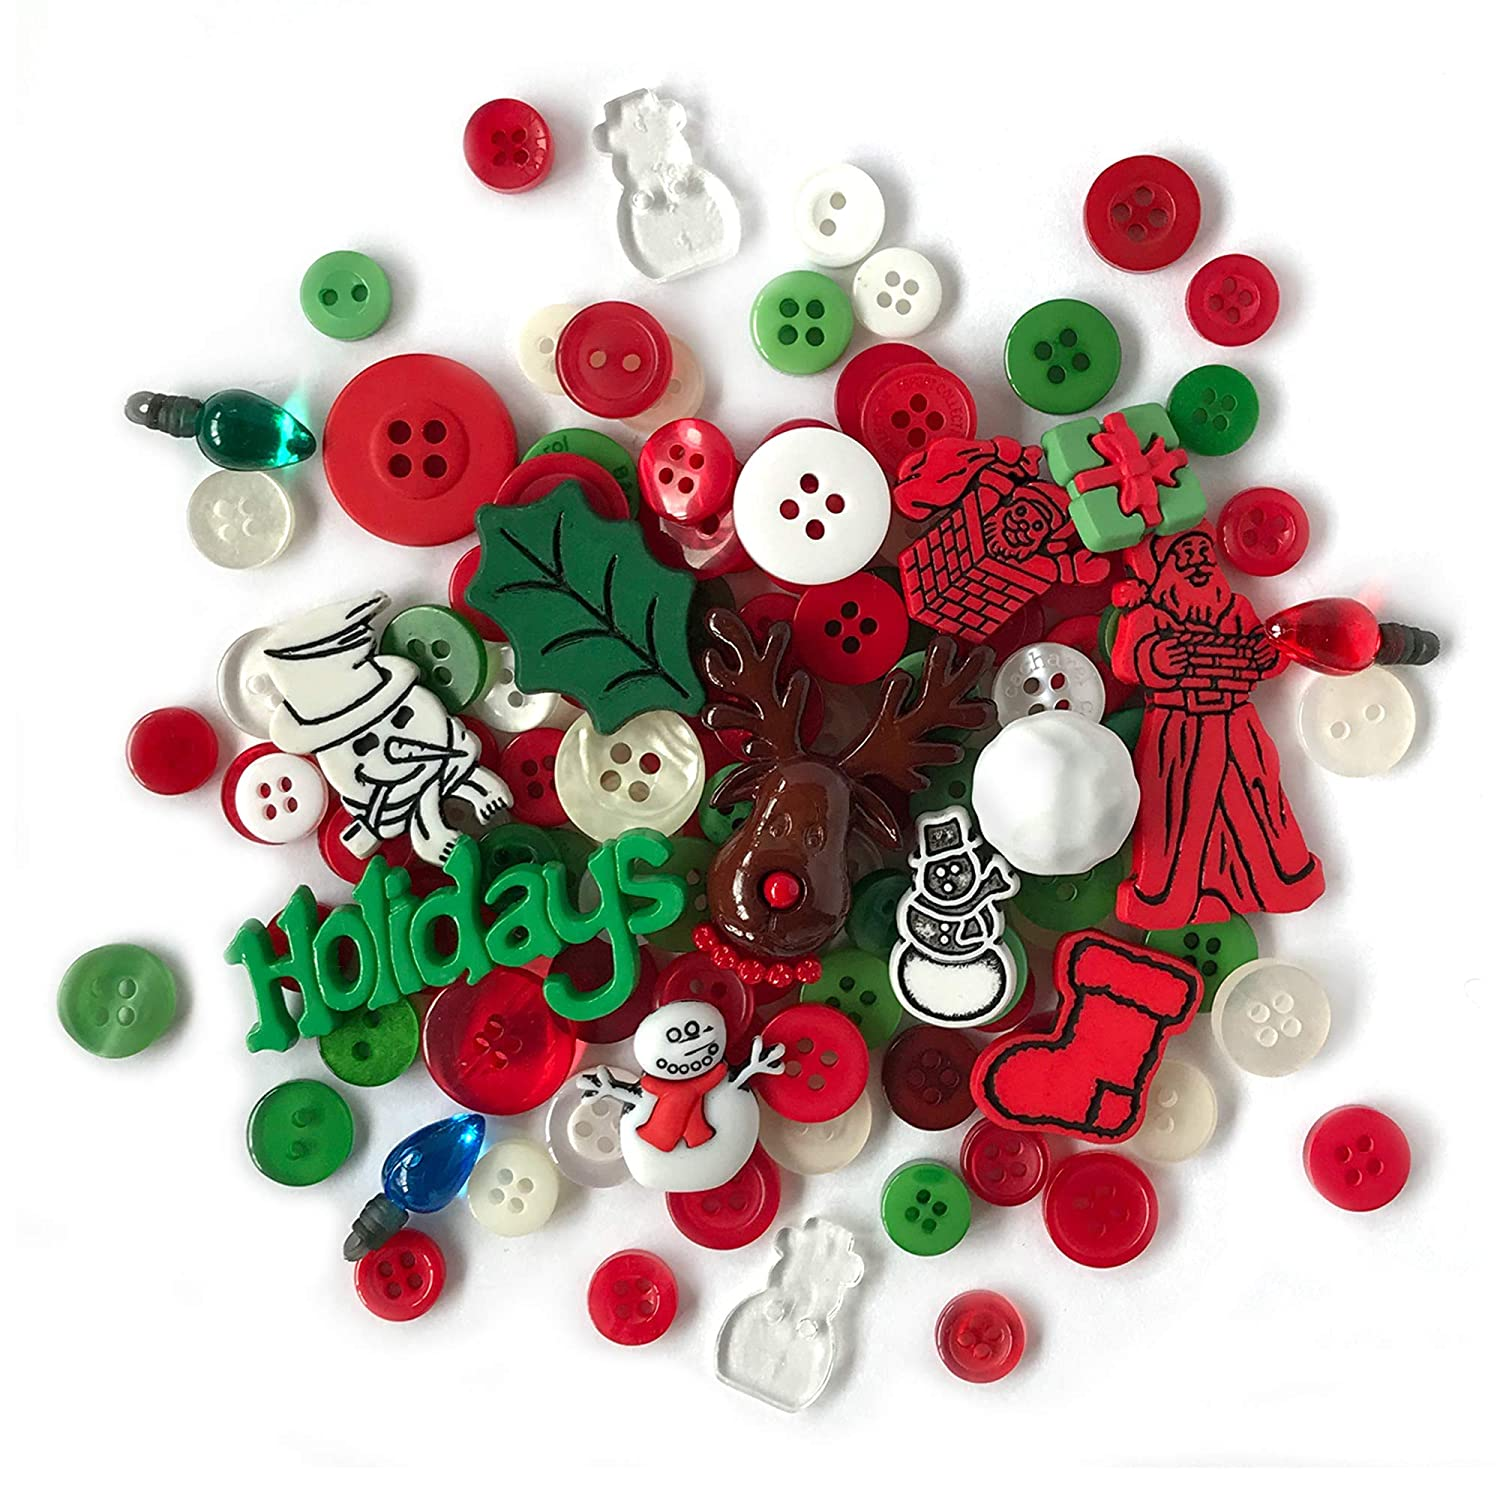 Christmas Themes.Buttons Galore And More Collection Round Novelty Buttons Embellishments Based On Variety Of Themes Holidays And Seasons For Diy Crafts